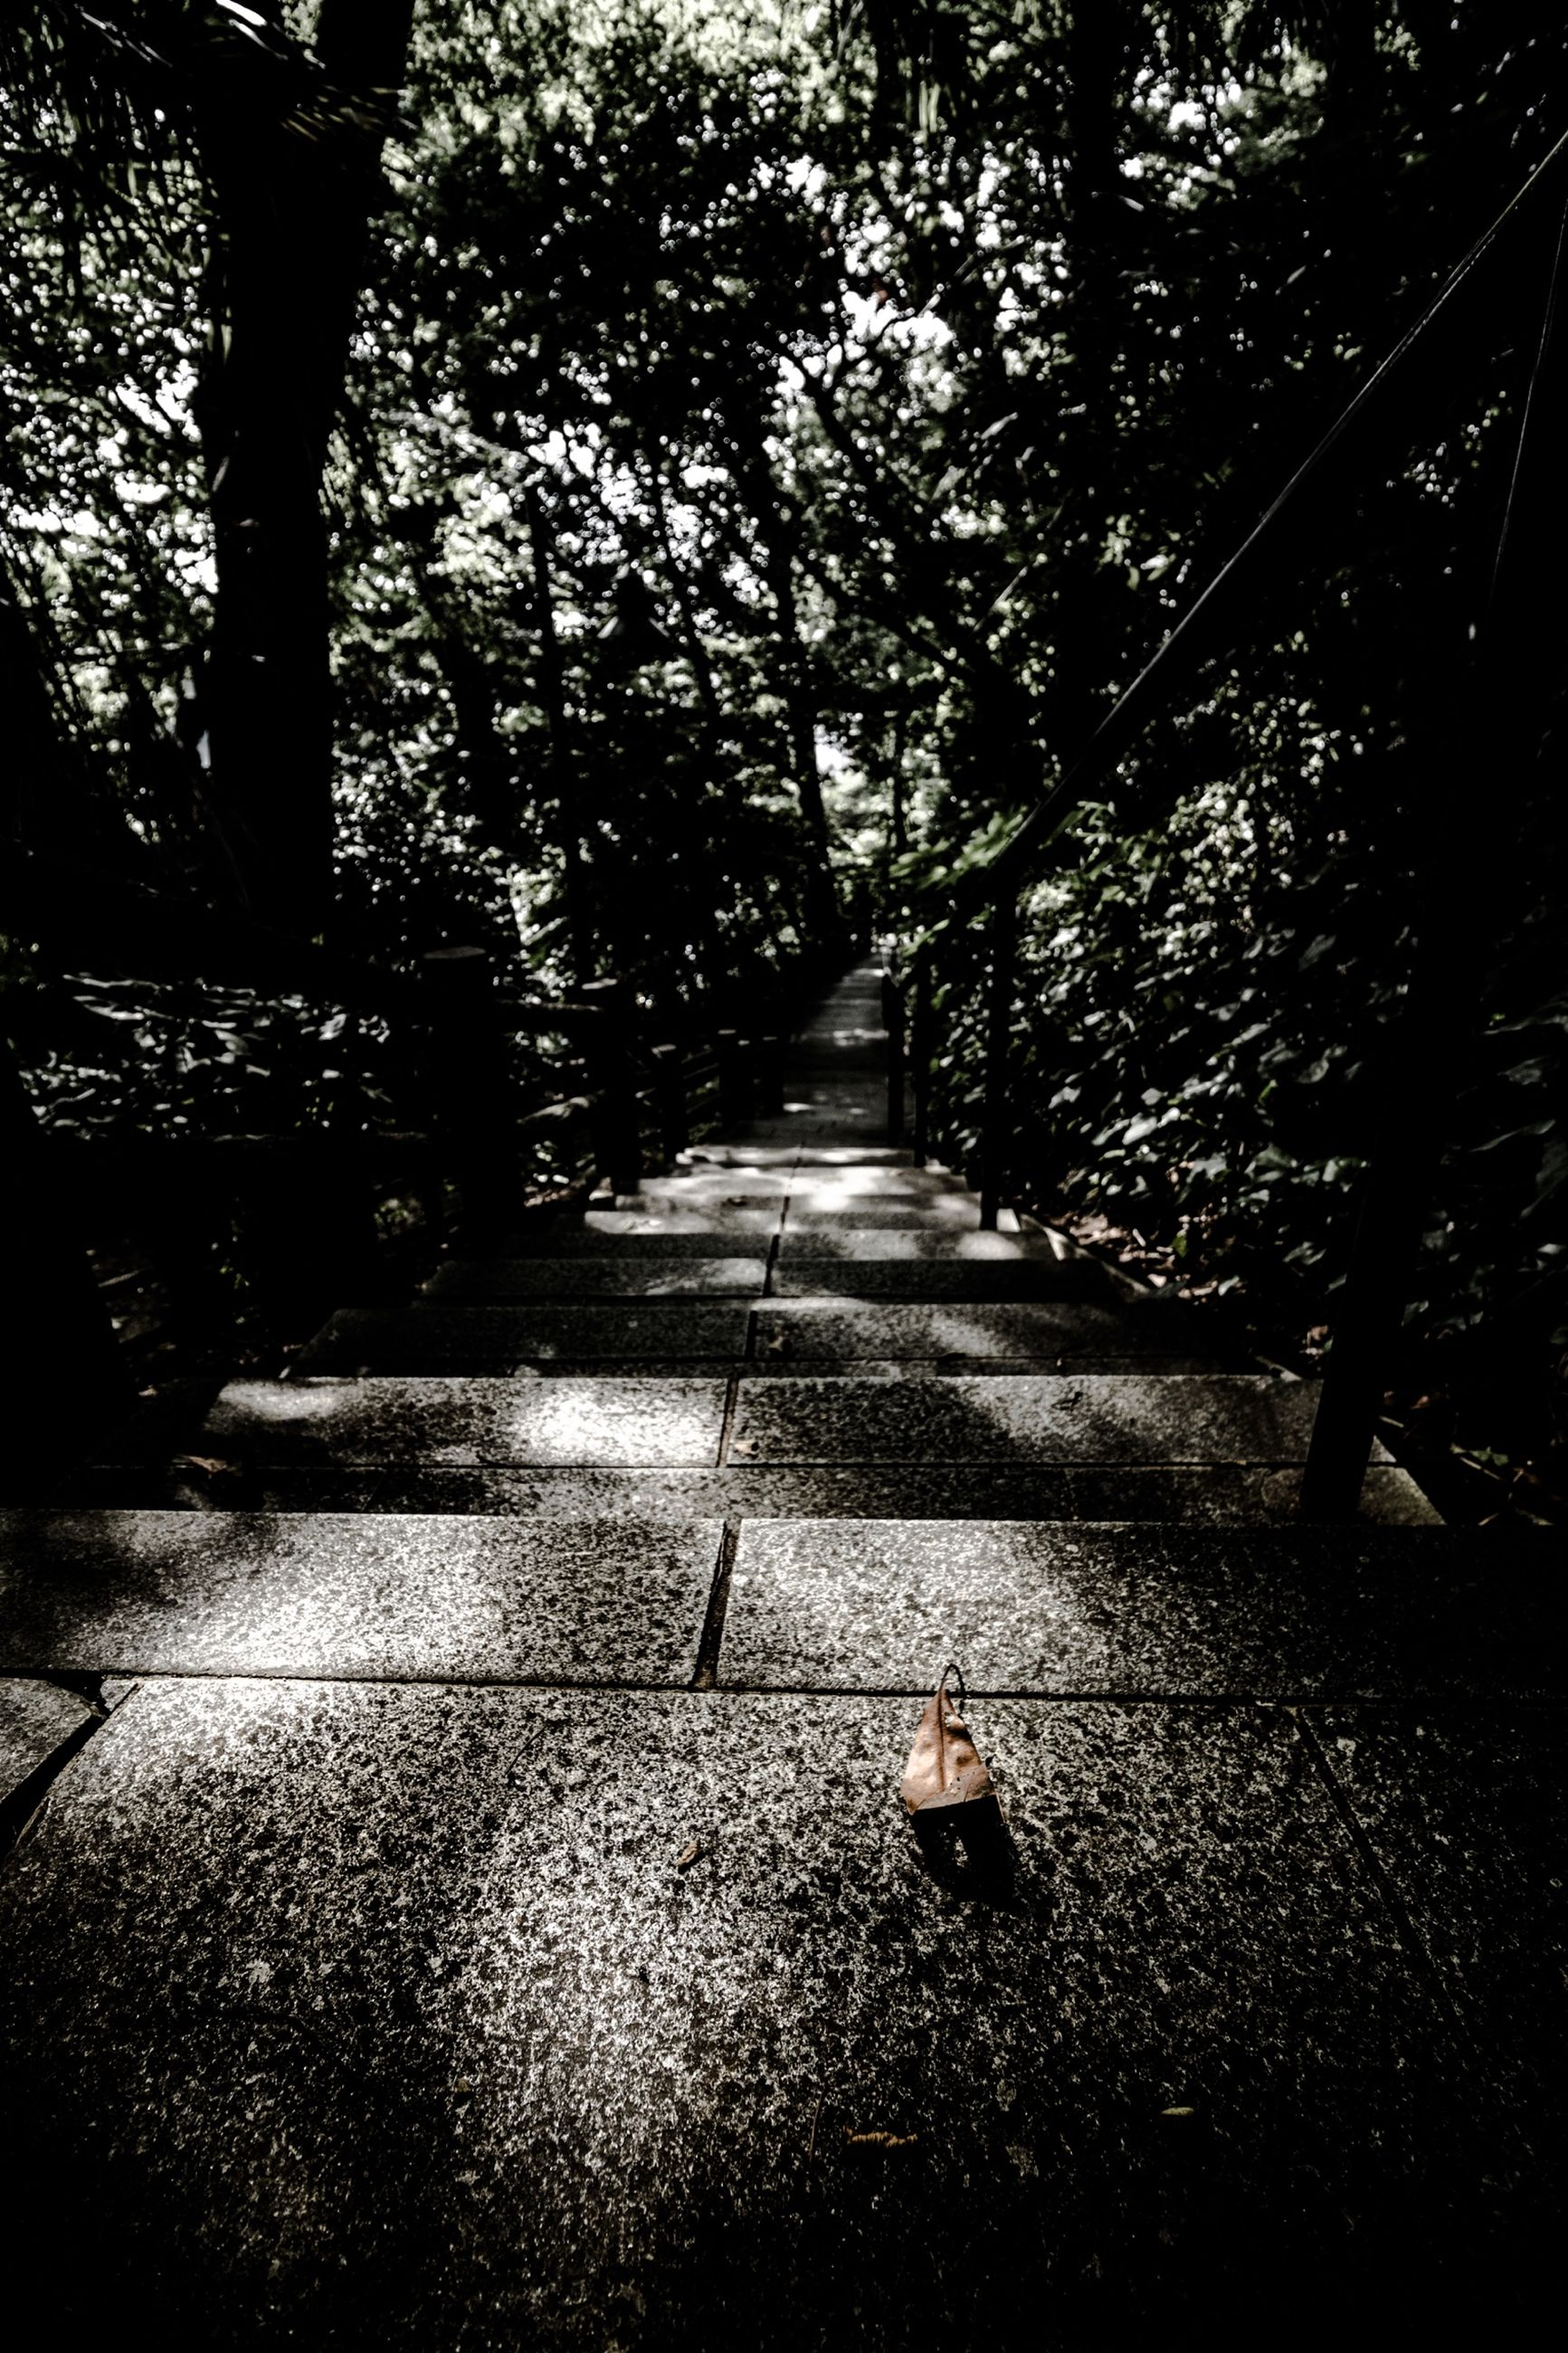 tree, the way forward, sunlight, shadow, footpath, diminishing perspective, street, transportation, walkway, road, park - man made space, empty, vanishing point, growth, outdoors, day, branch, nature, no people, pathway